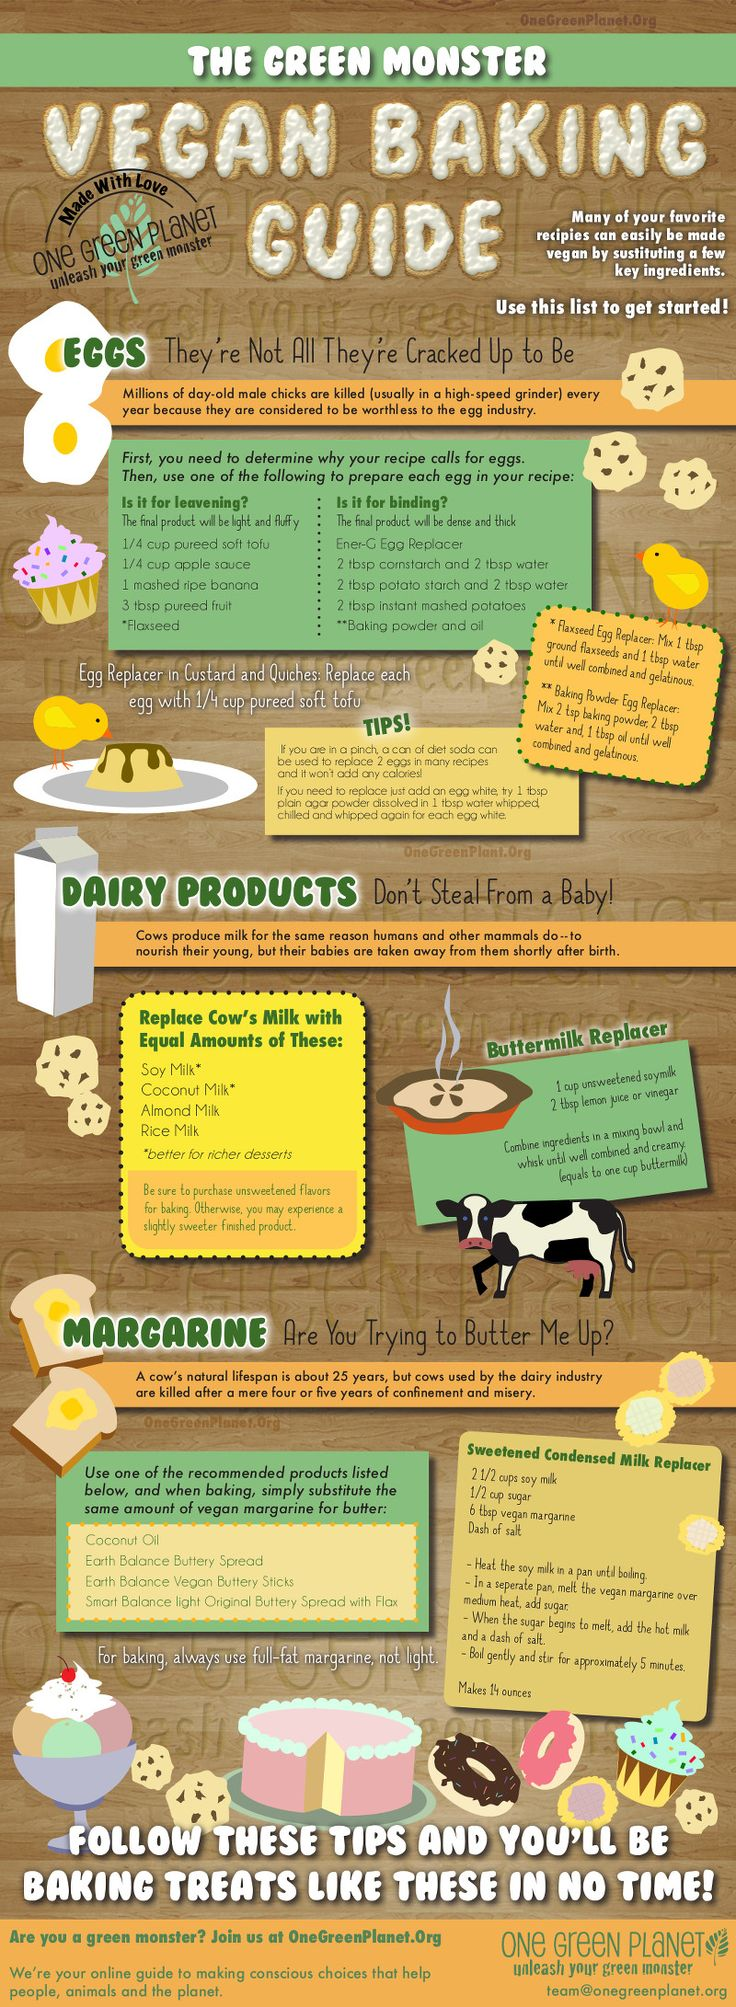 The Green Monster Vegan Baking Guide [GRAPHIC] | One Green Planet